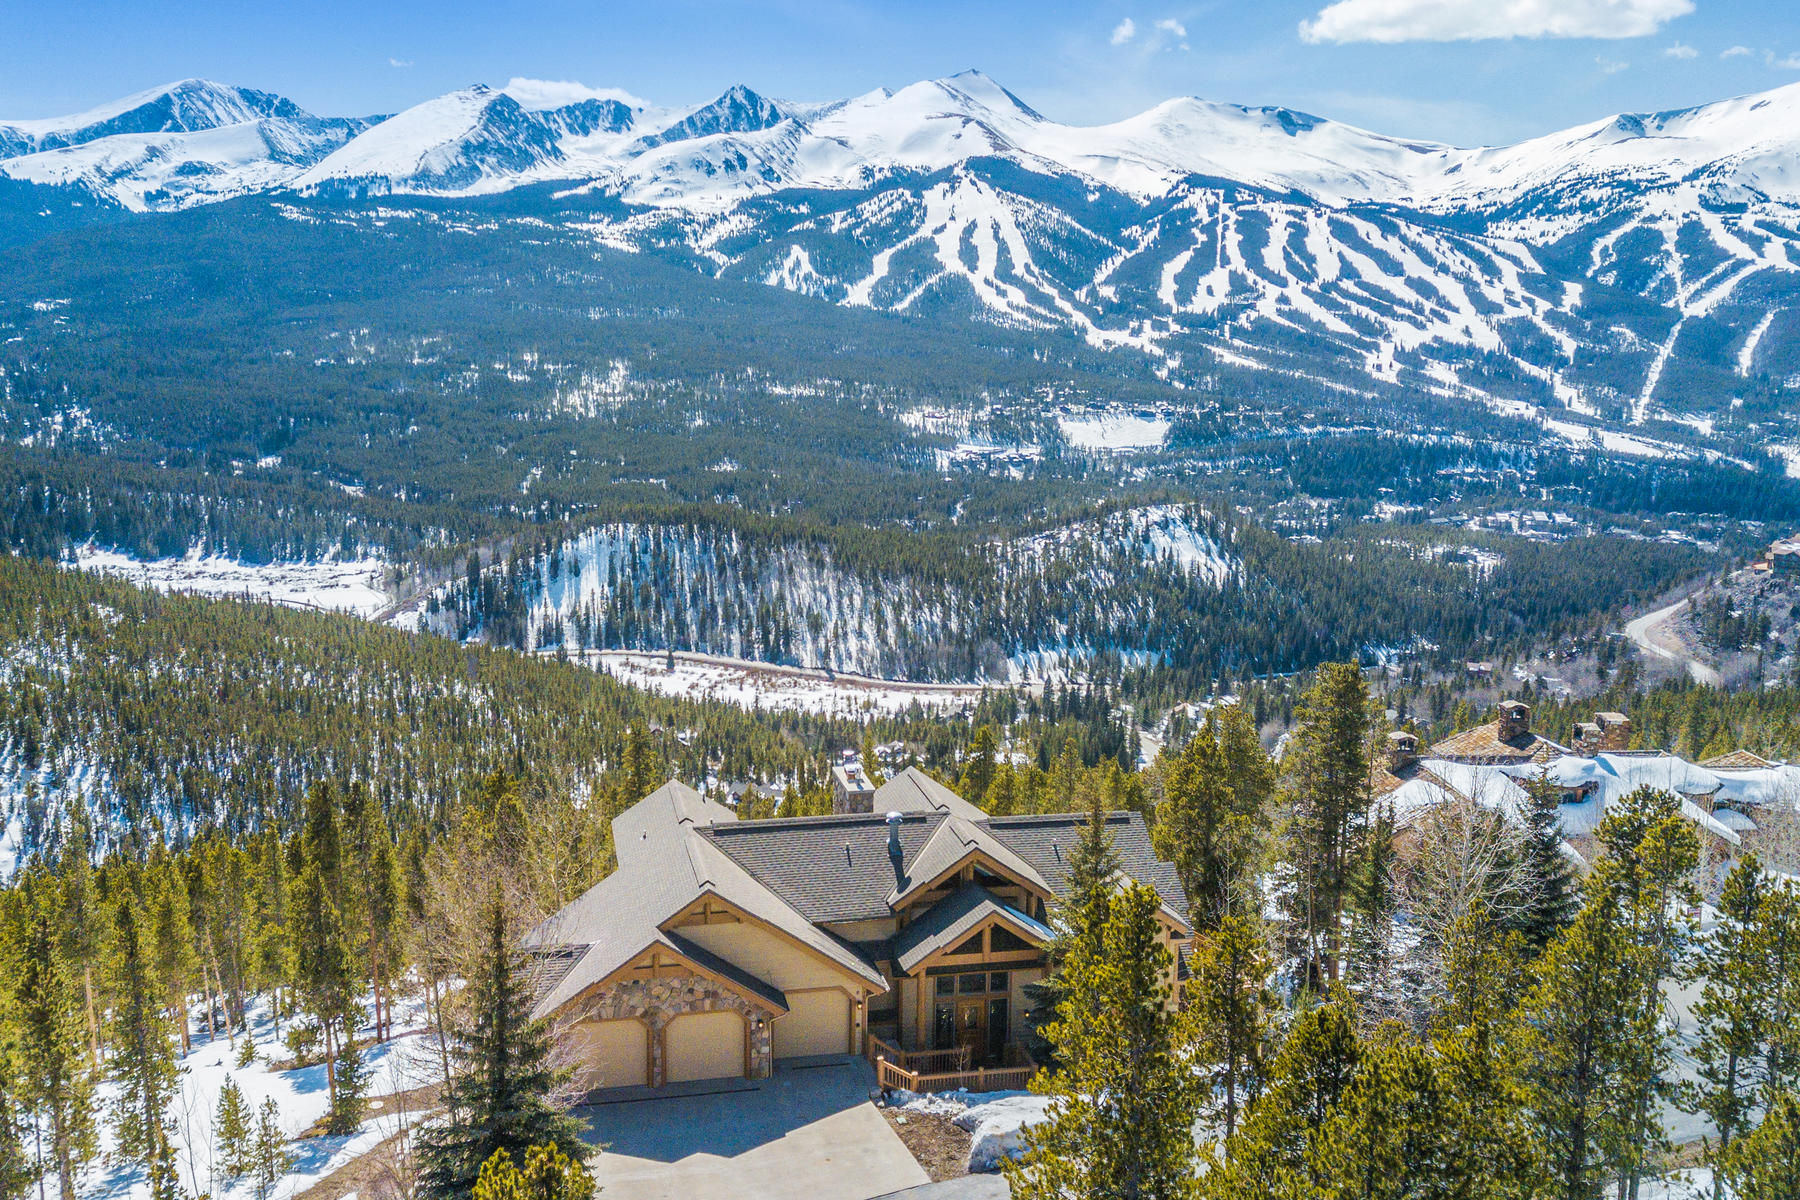 Single Family Homes for Active at One of a Kind Breckenridge Legacy Home 157 Juniata Circle Breckenridge, Colorado 80424 United States